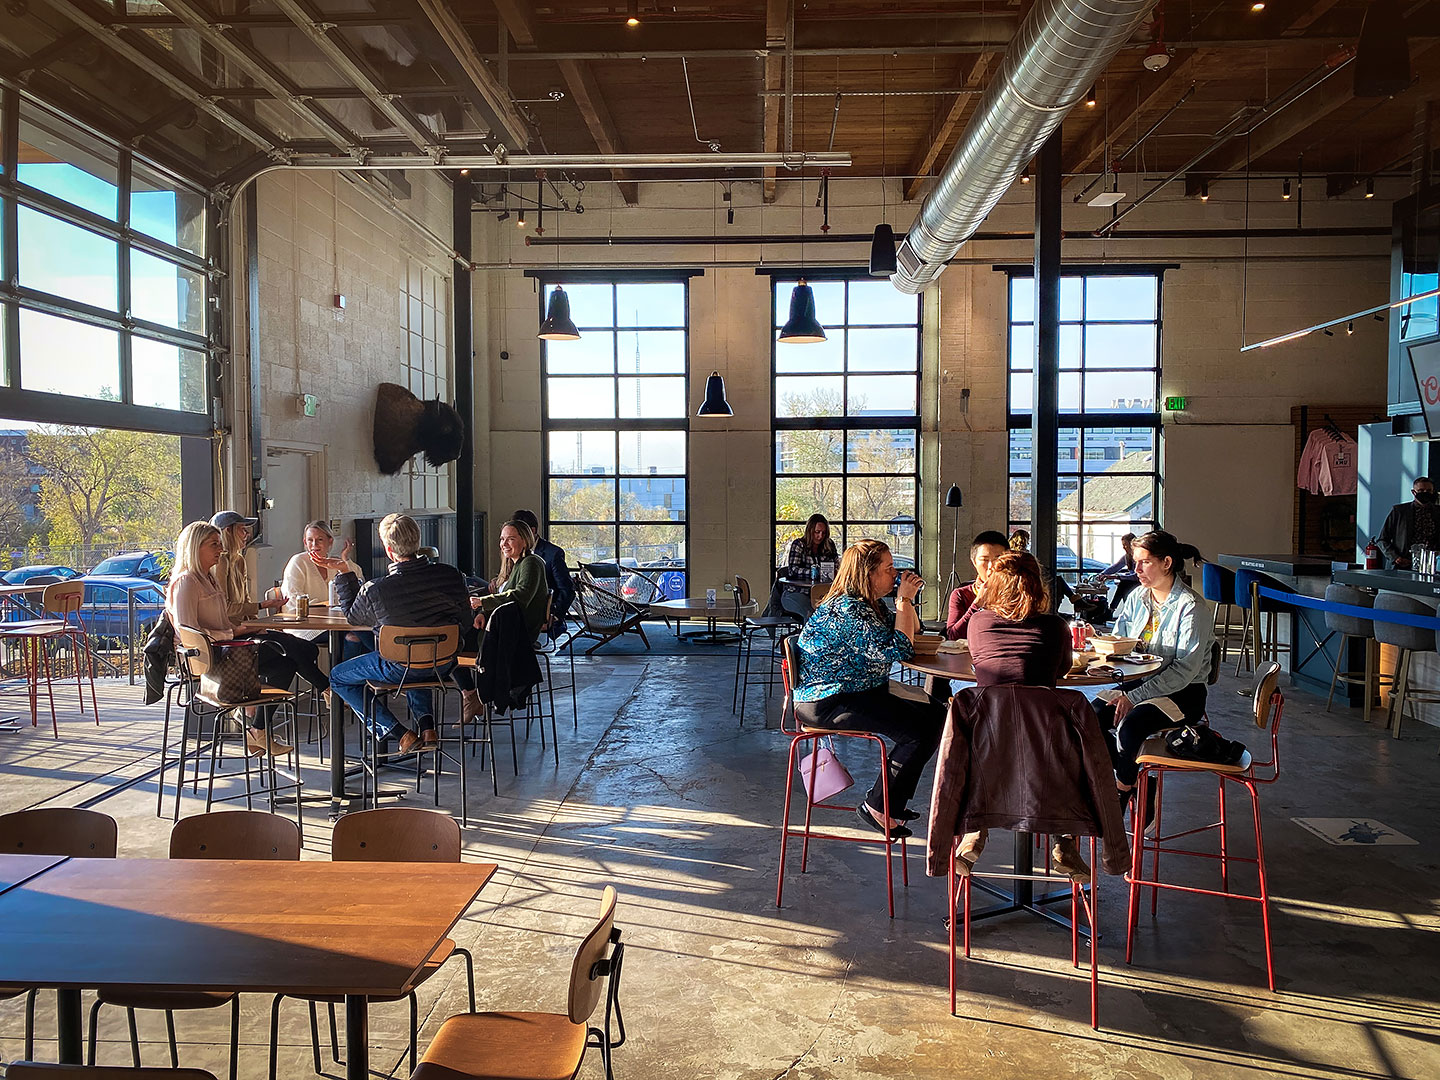 Number 38 Social Hall - Bar, Restaurant & Music Venue in RiNo, Denver - Focused on Colorado local - Mostly outdoor spaces with the feeling of après skiing all year long